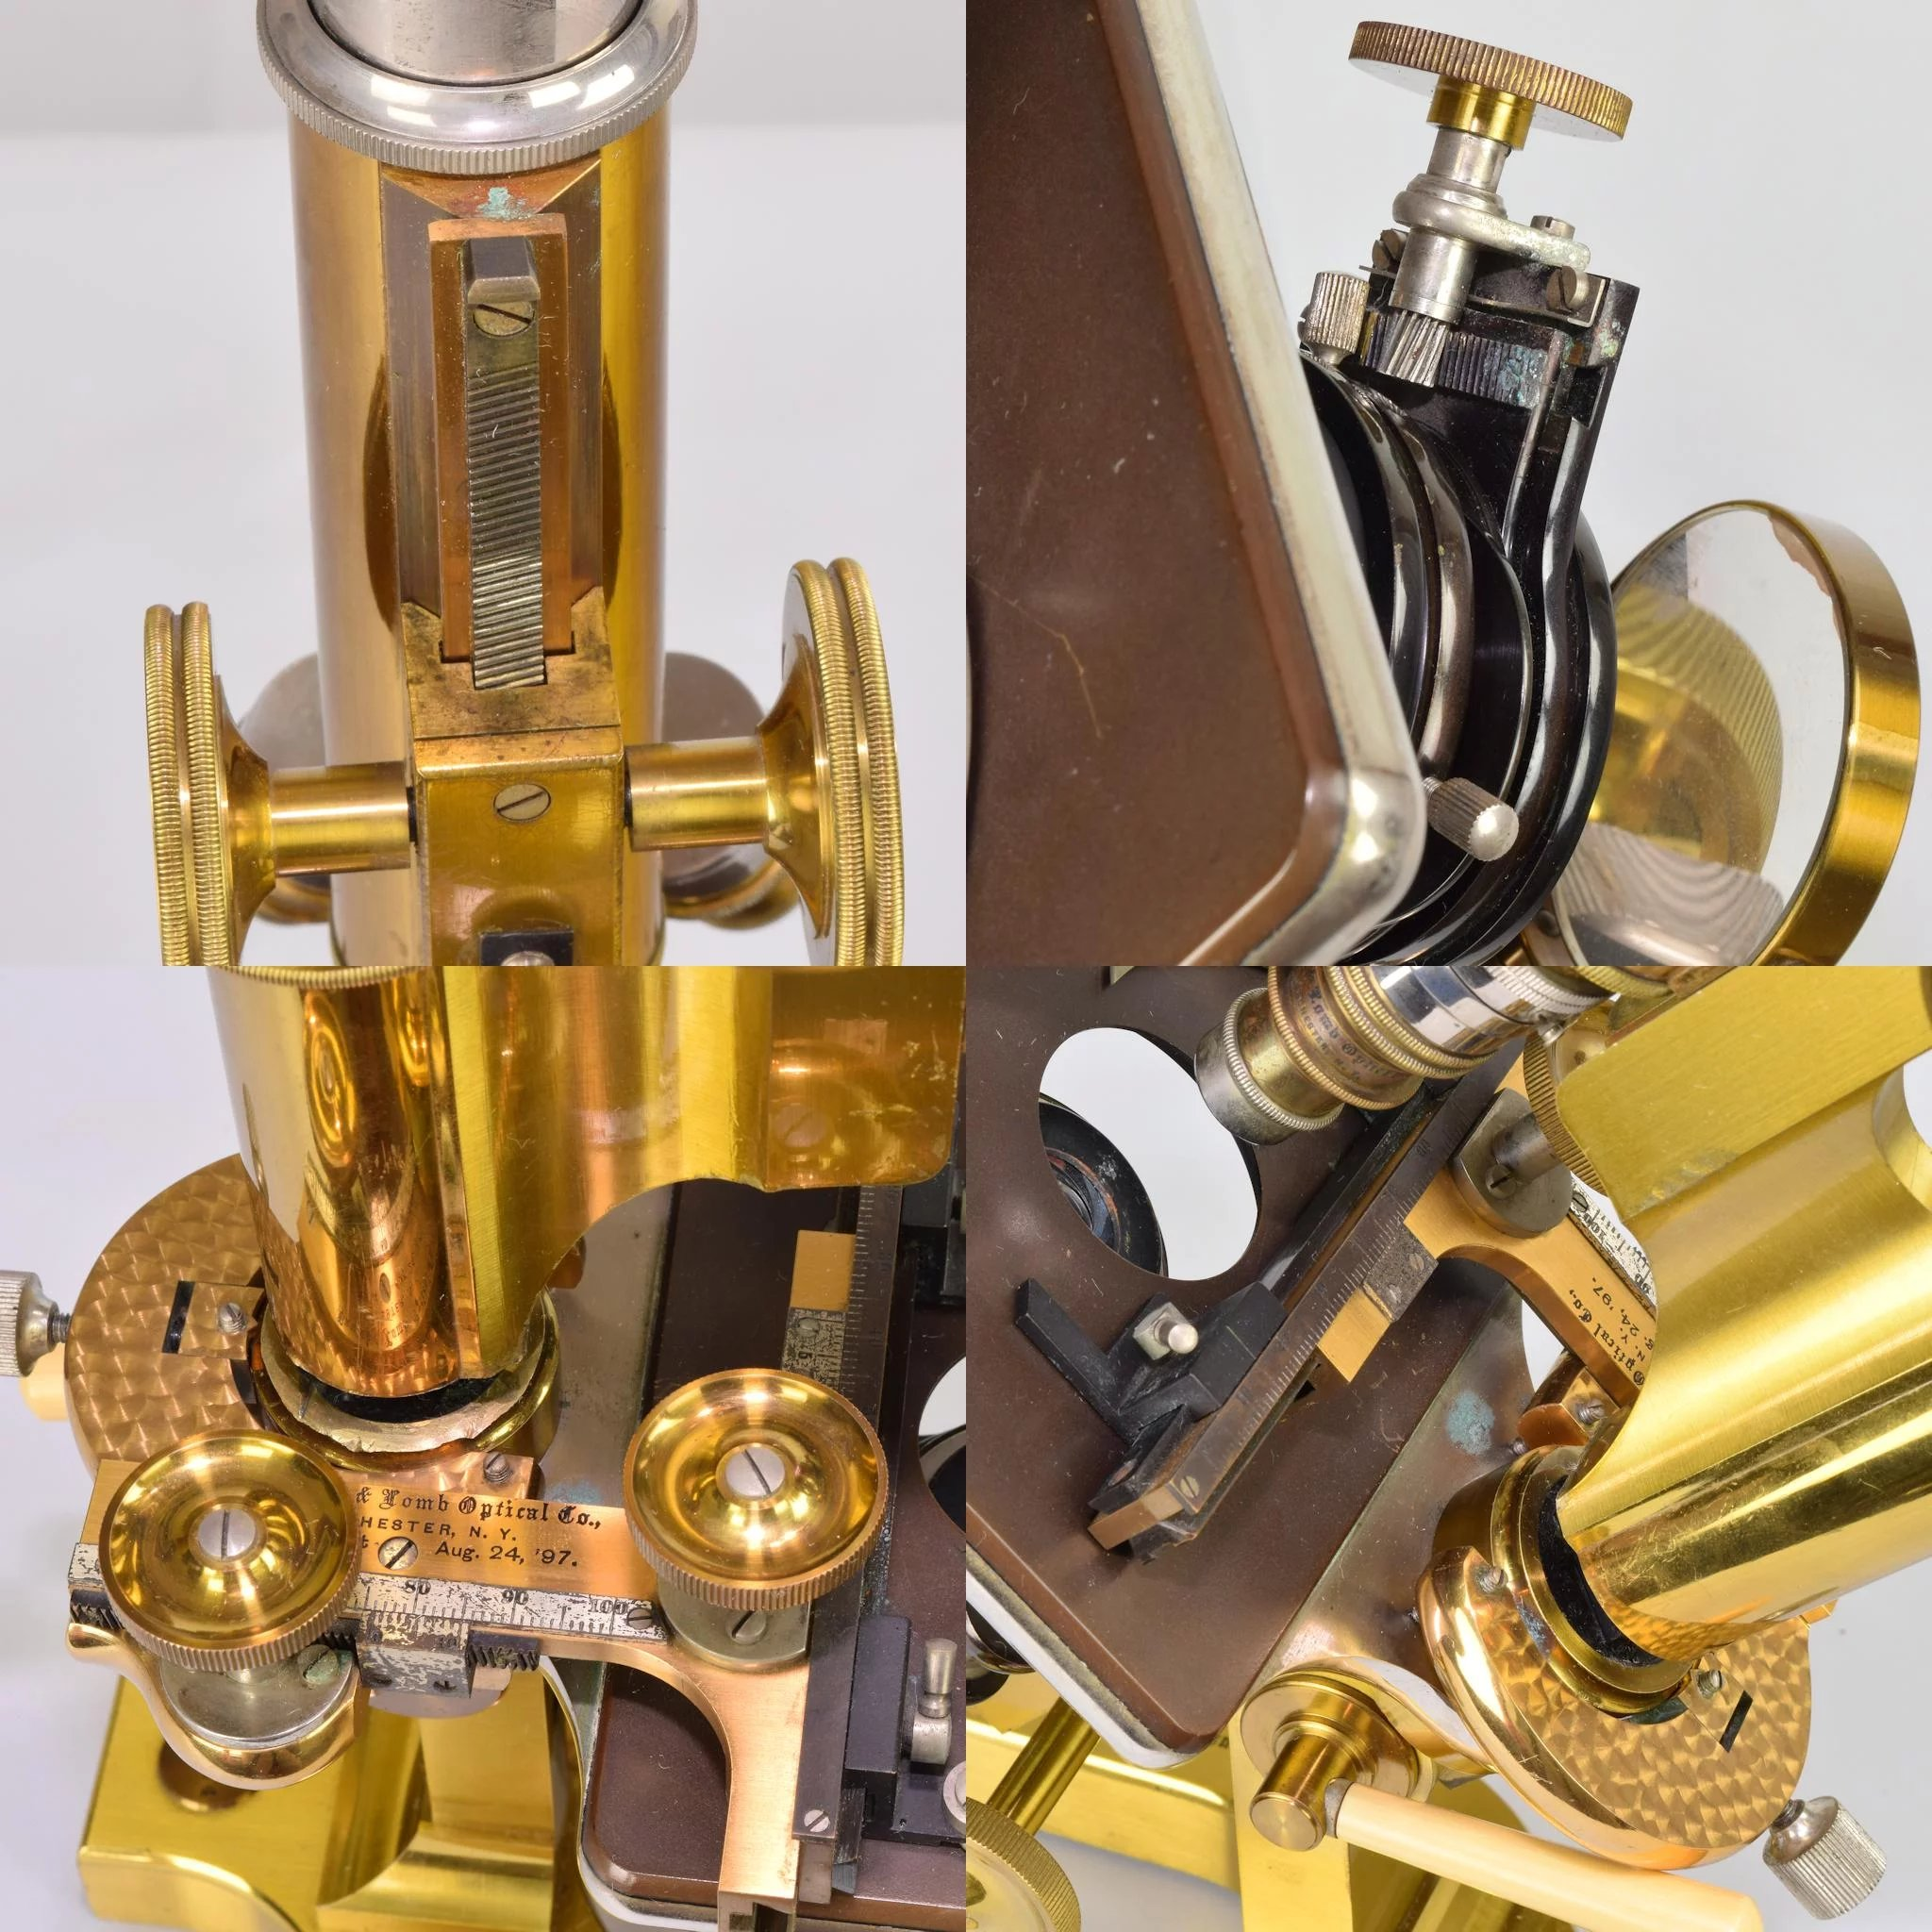 Antique Bausch and Lomb Brass Microscope with Wood Case c